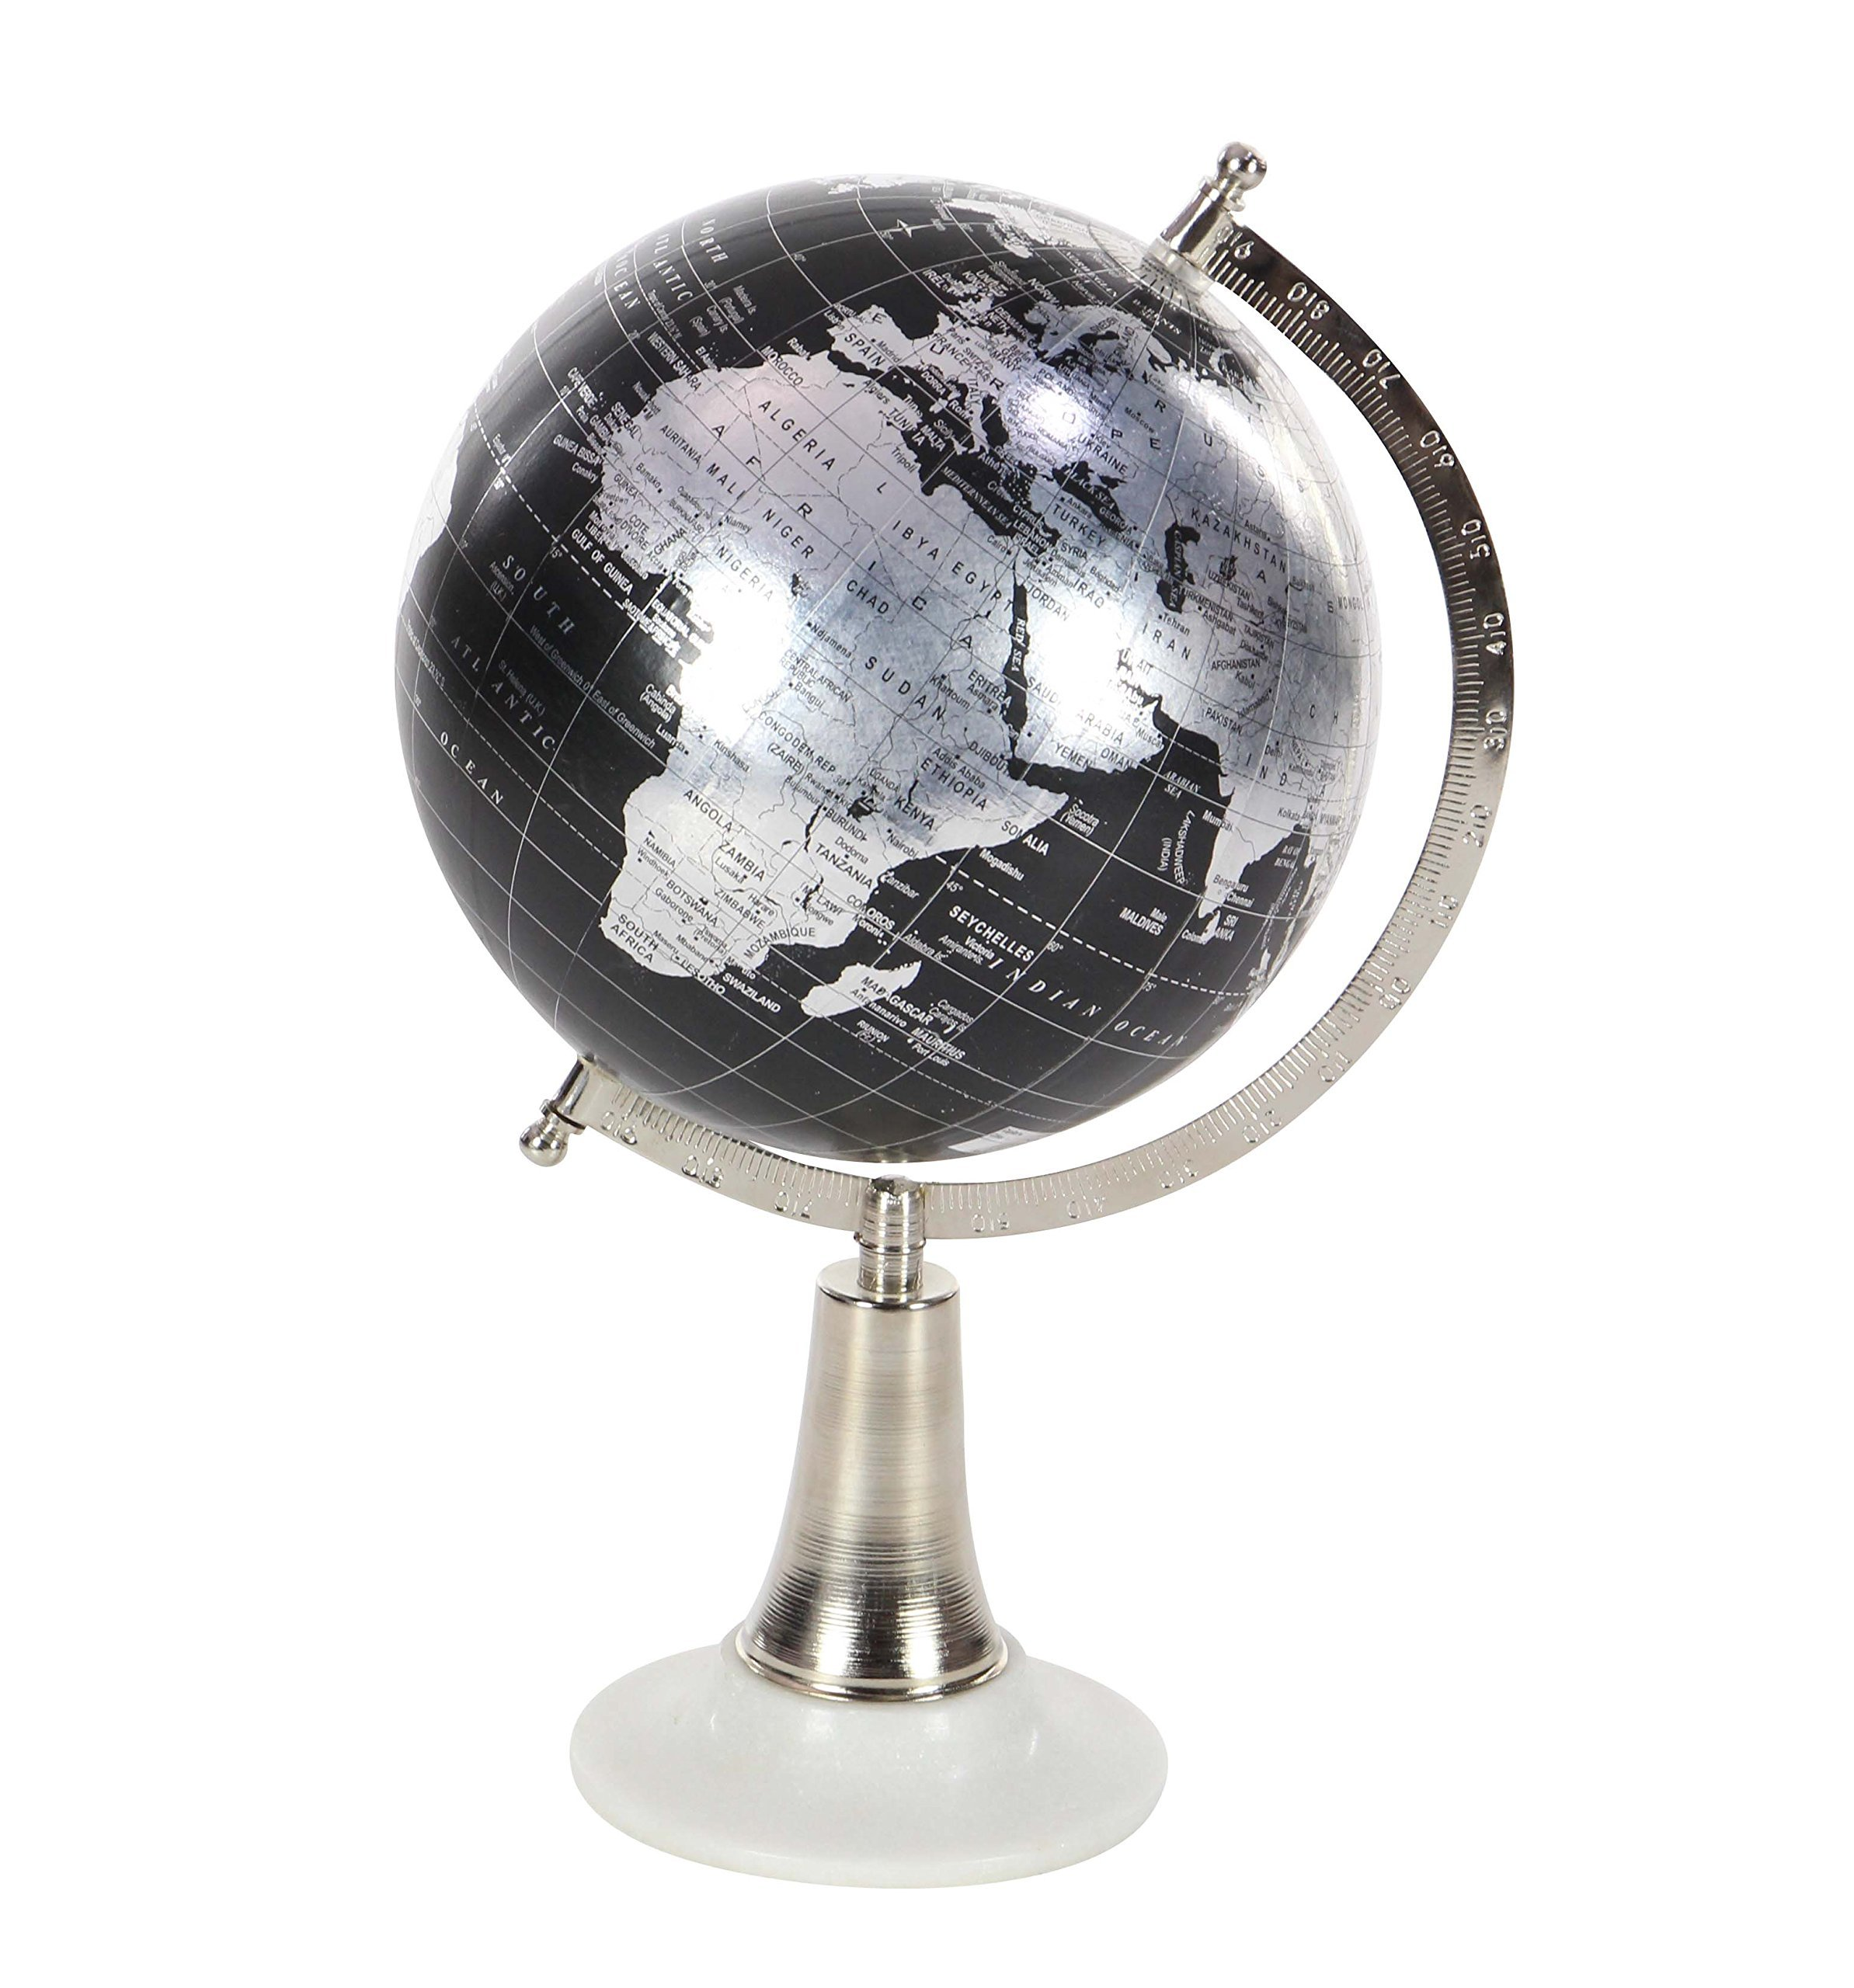 Deco 79 94510 Decorative Globe with Iron and Marble Stand, 15'' x 8'', Silver/Black/White